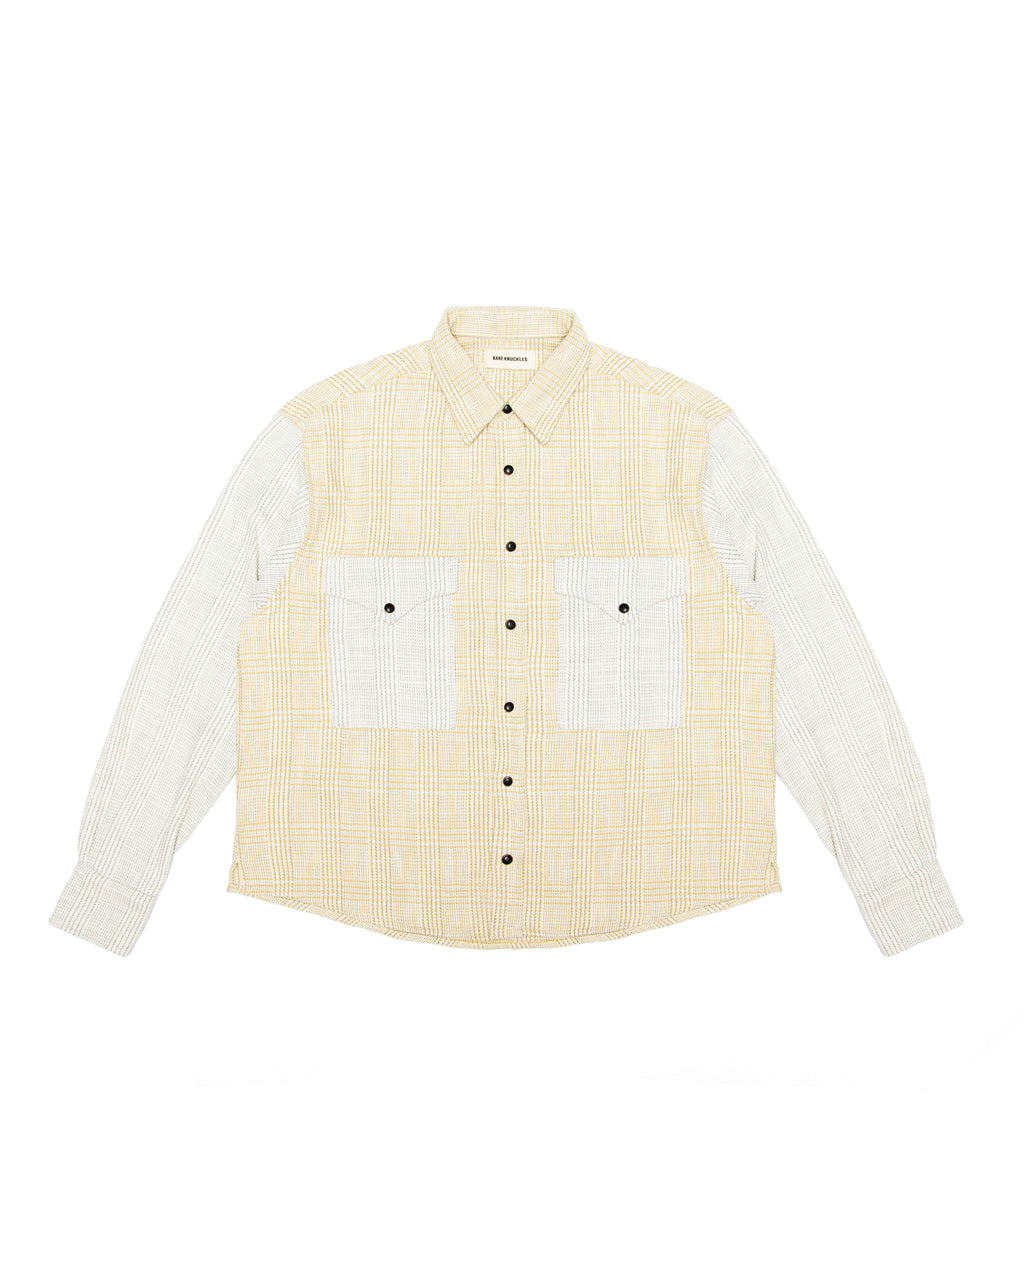 Two-Tone Flannel - Yellow and Ivory